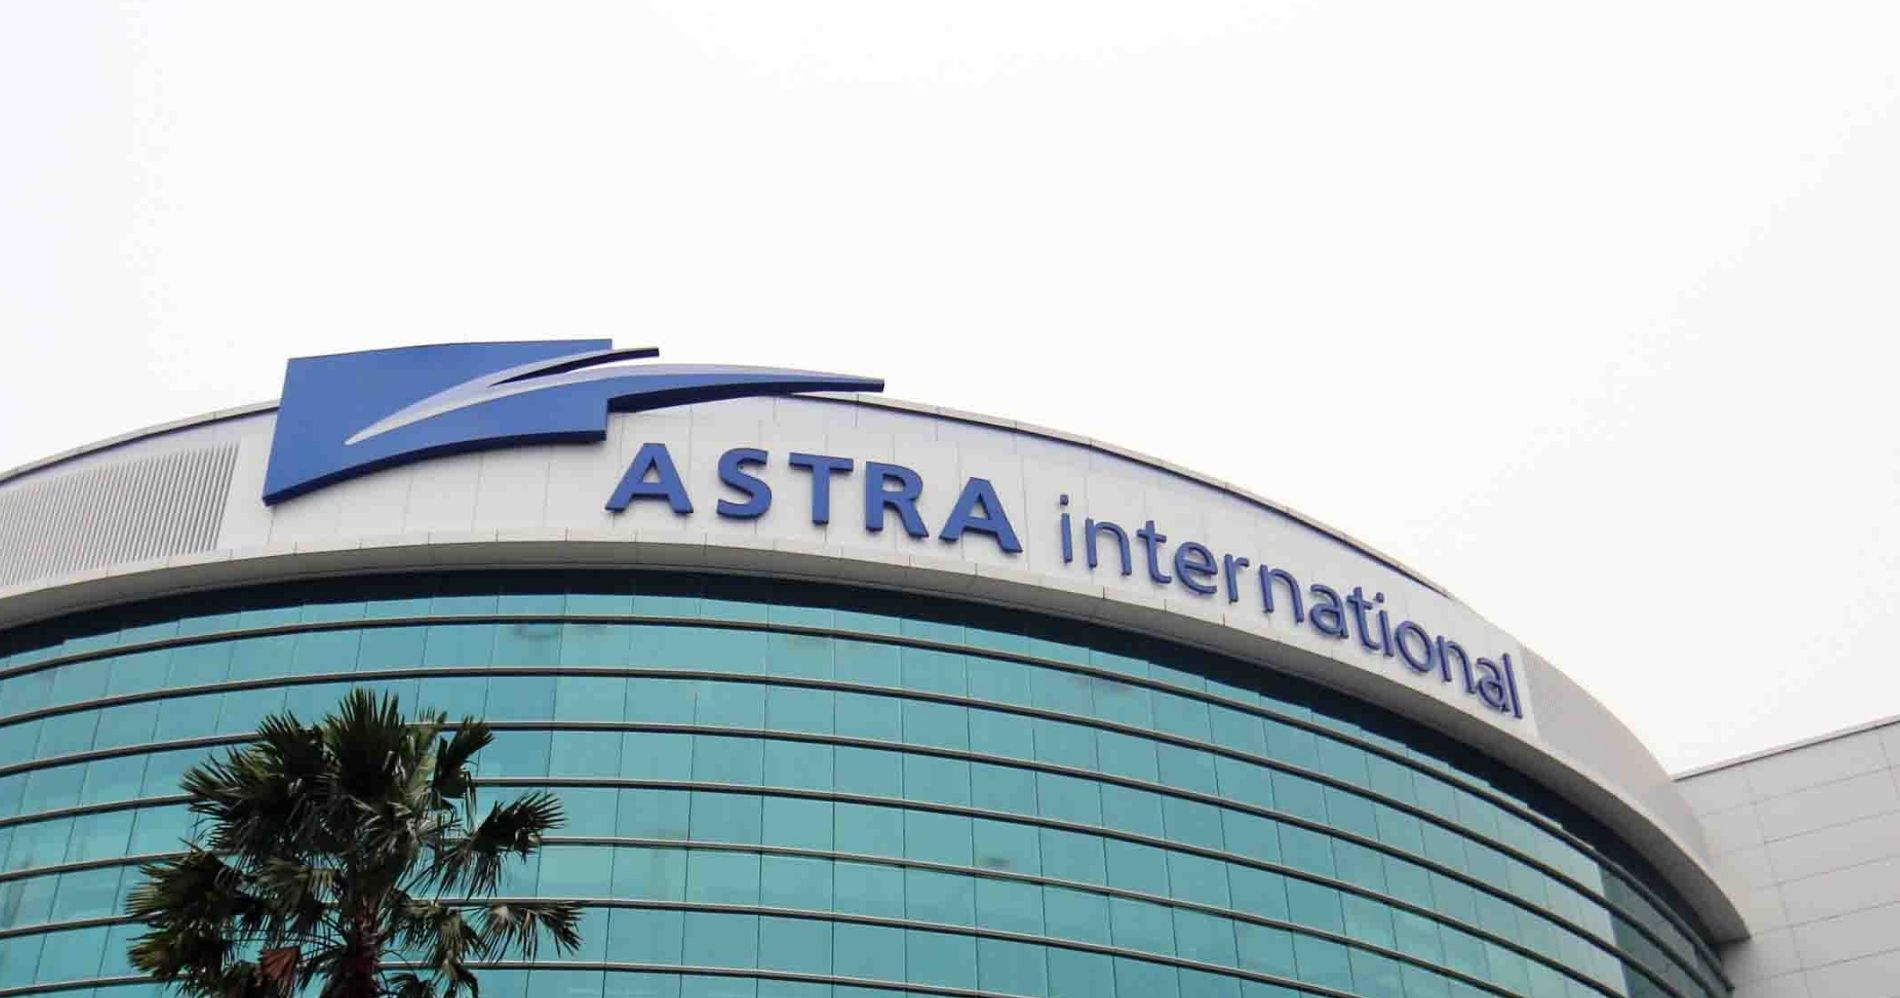 Astra Int - Image: Astra